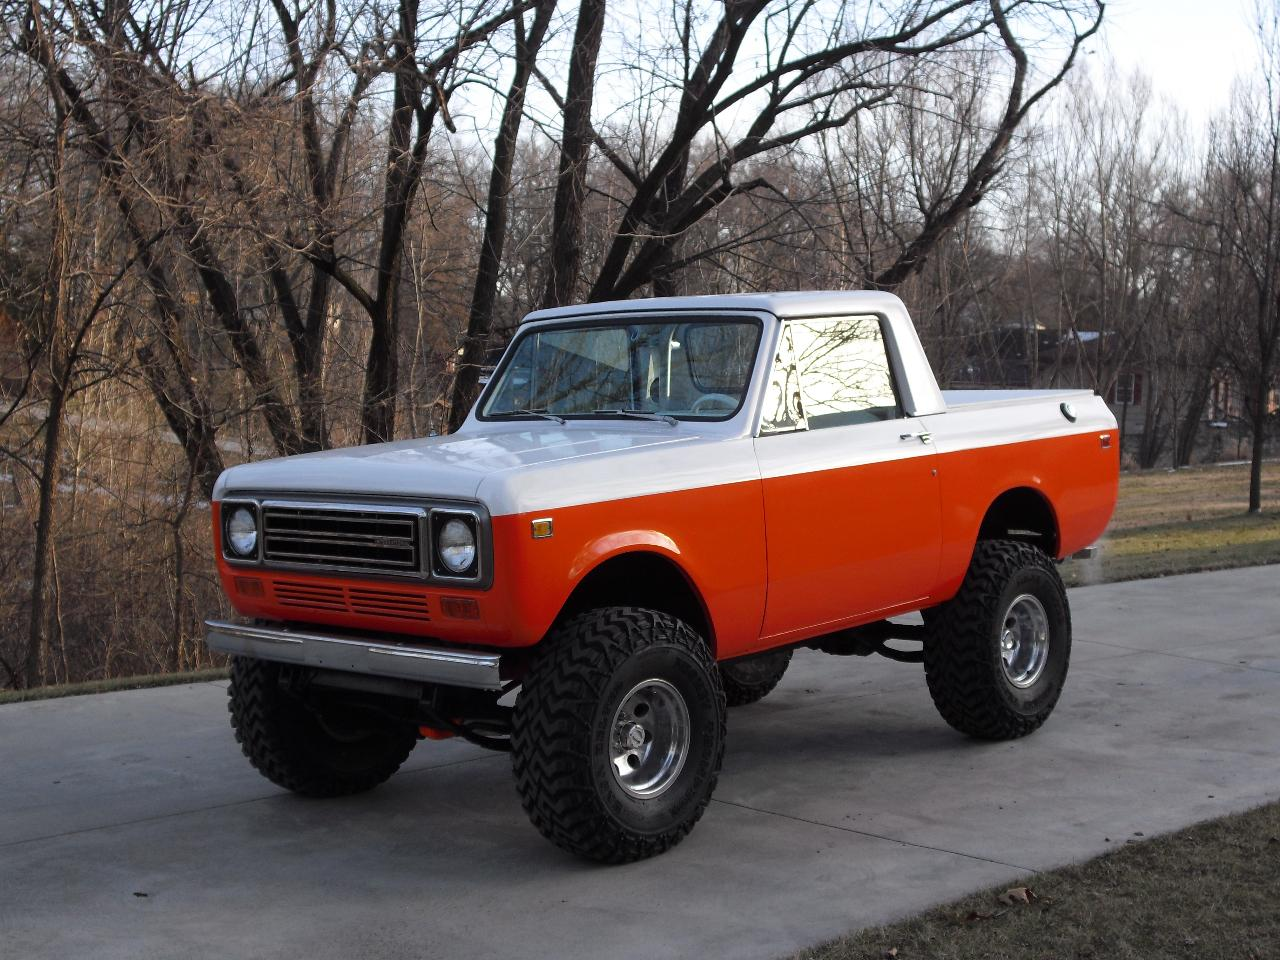 TMKdesign's 1977 International Scout II